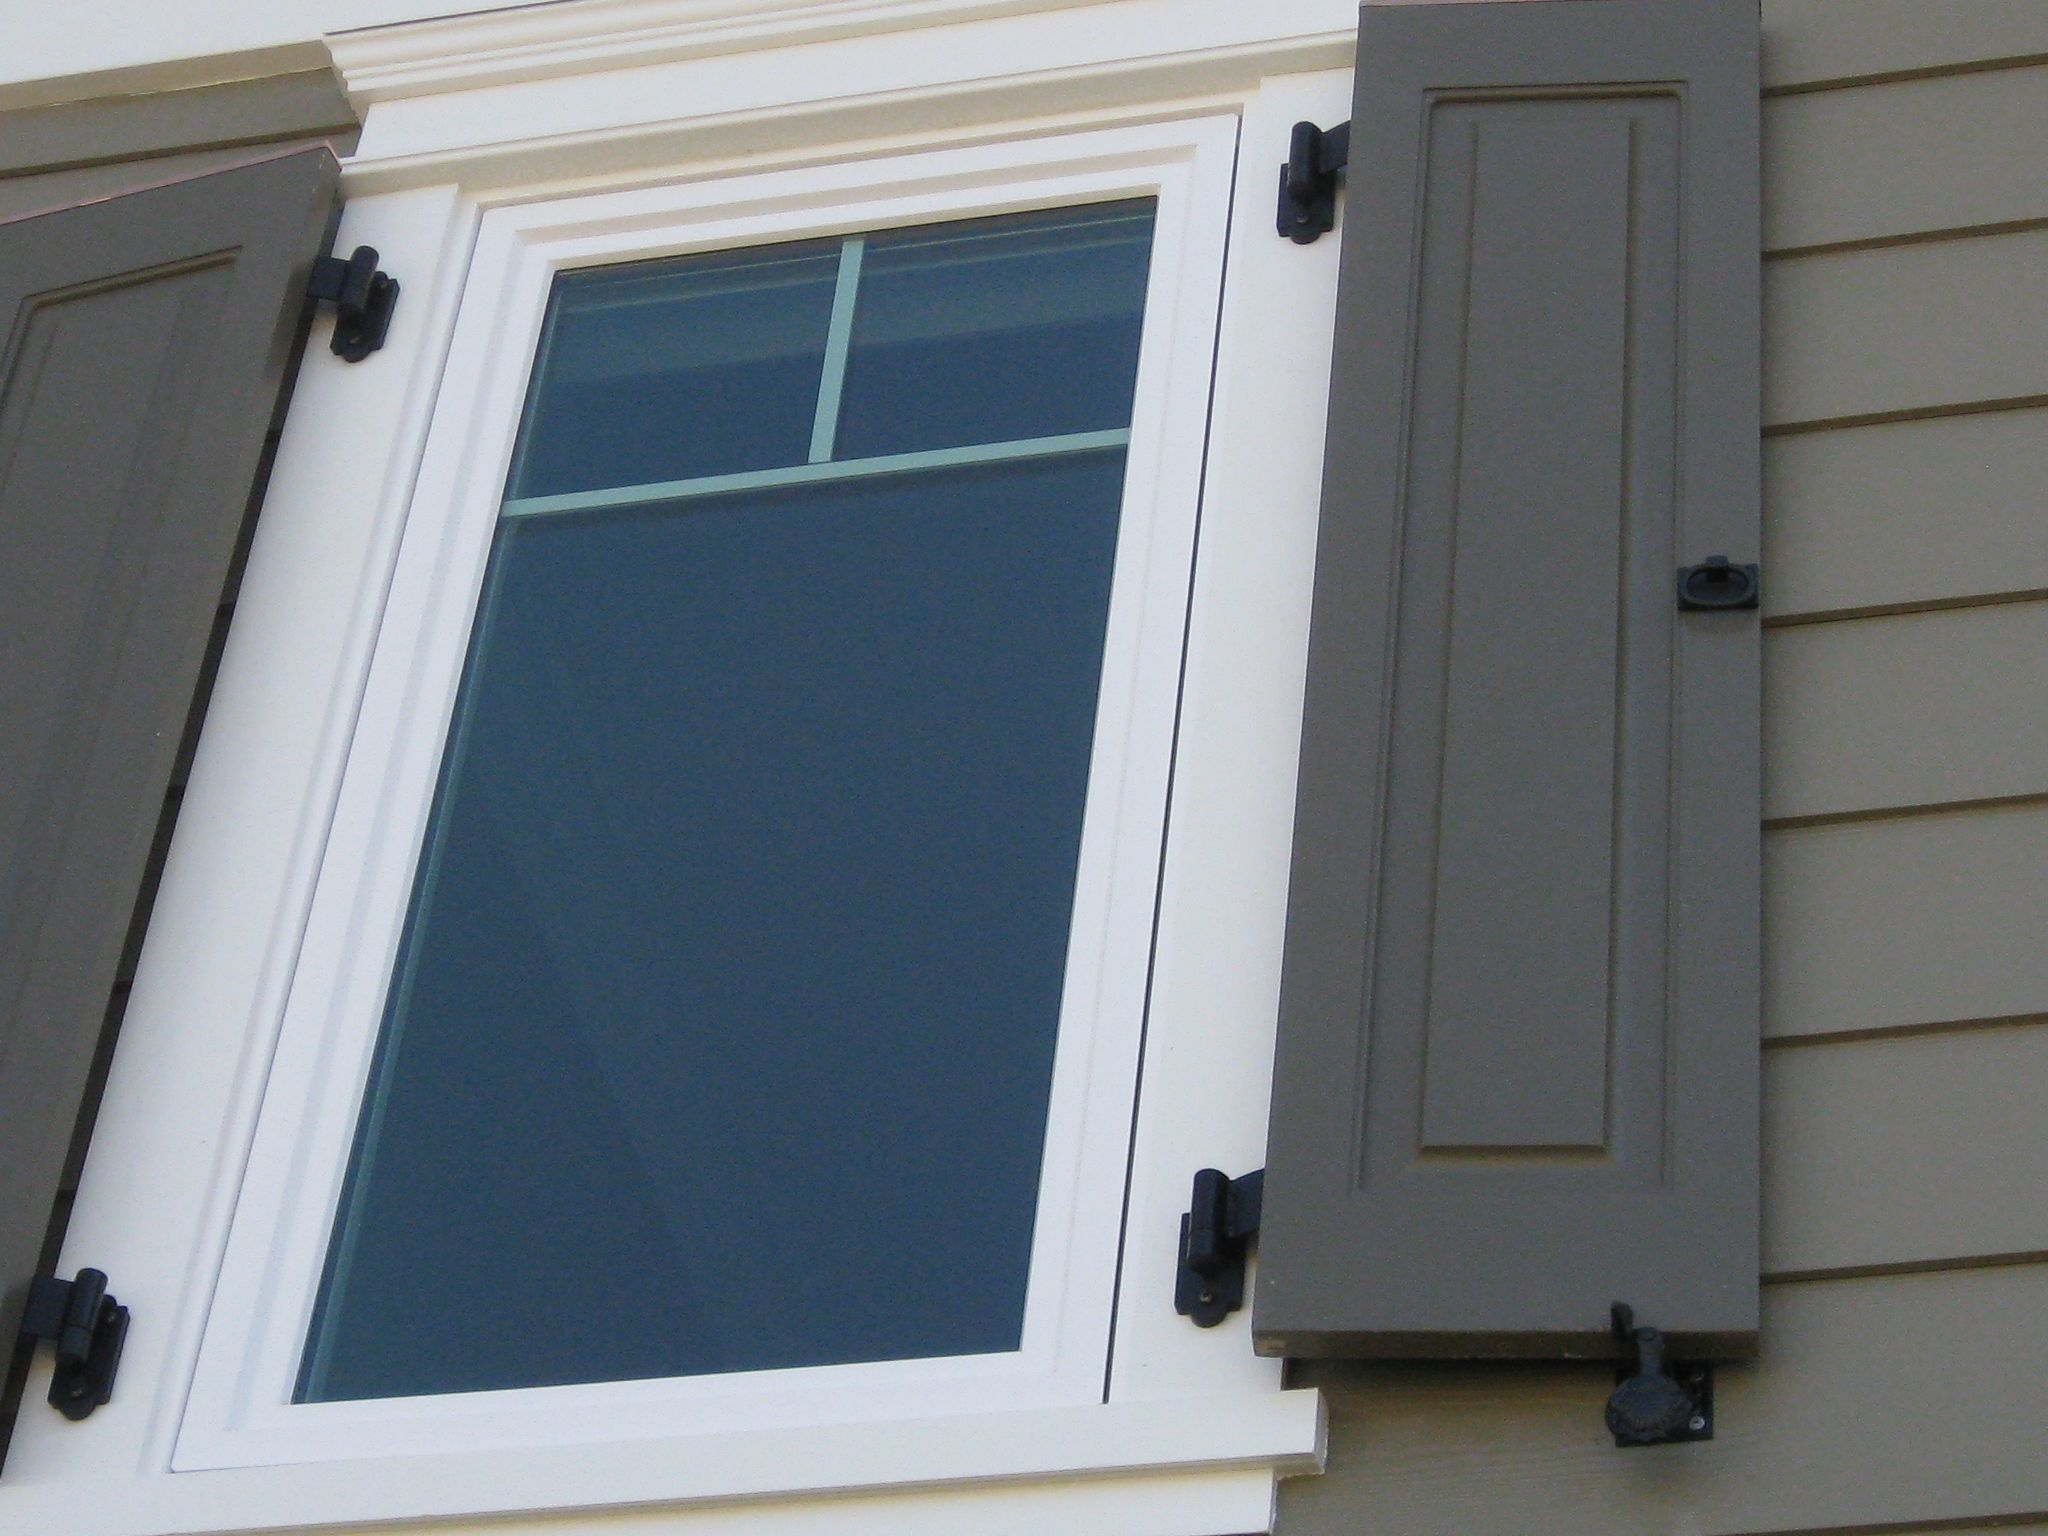 Close Up Of The Windows Shutters And Lynn Cove Hardware This Project Used Carbon Steel Shutter